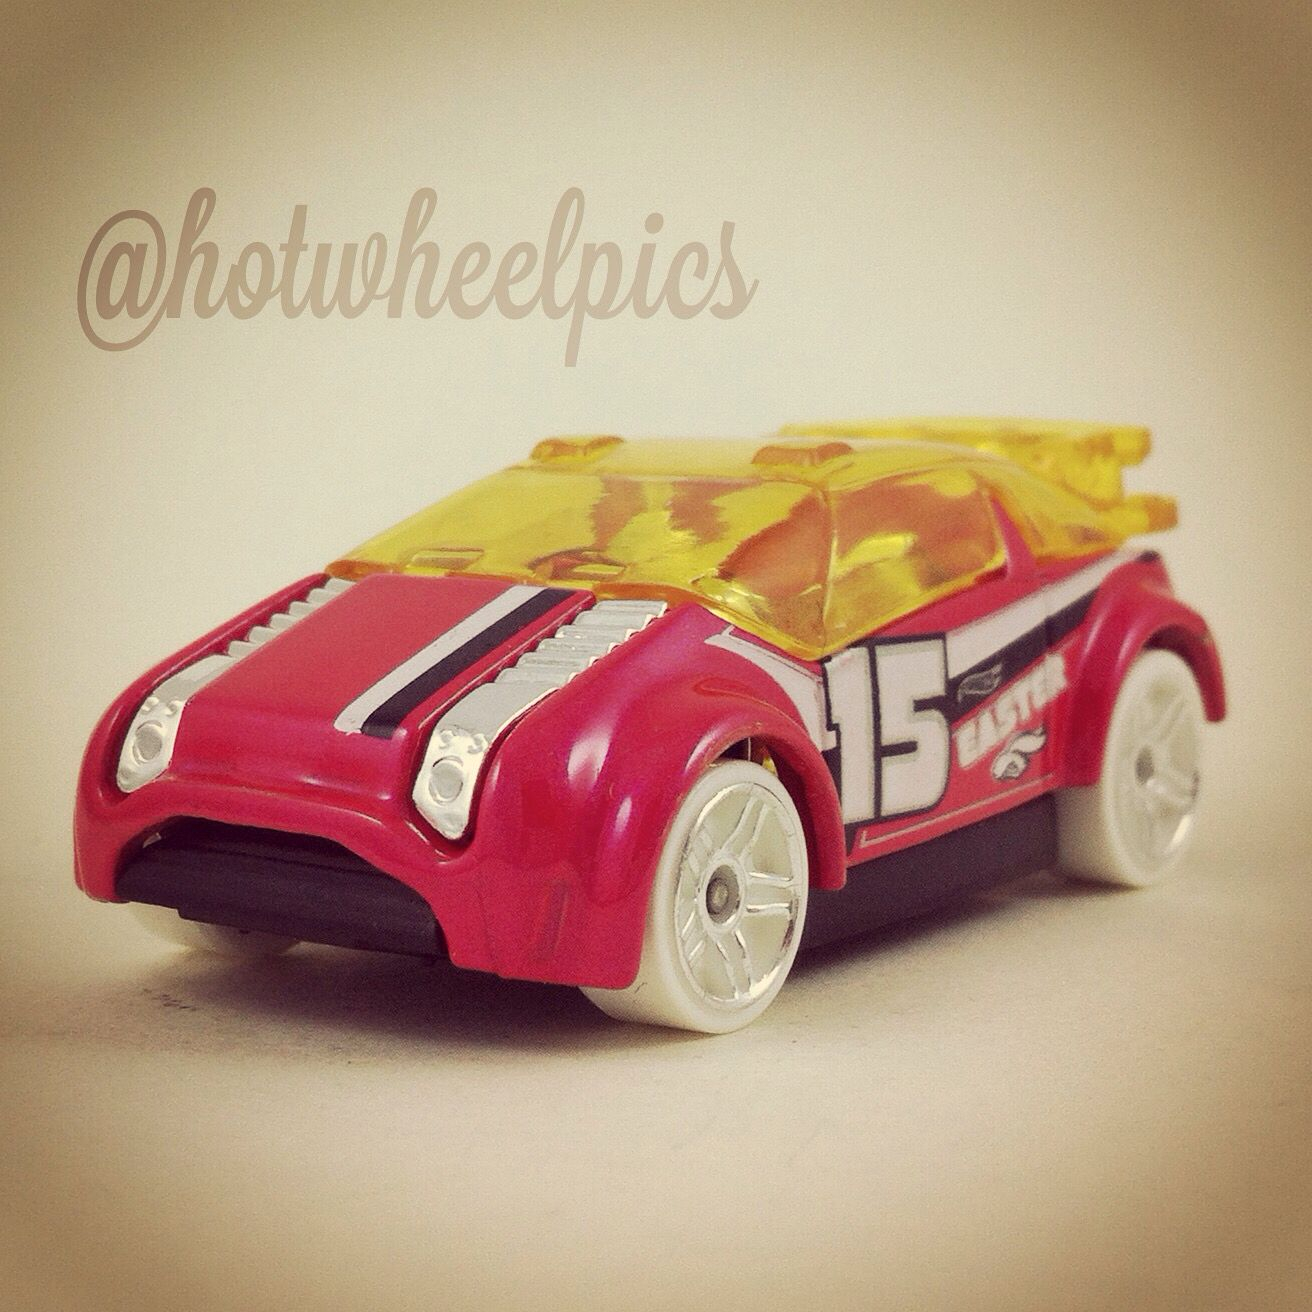 Happy Easter Super Gnat 2015 Hot Wheels Easter Cars Walmart Excl Hotwheels Toys Diecast Easter Hot Wheels Toy Car Diecast